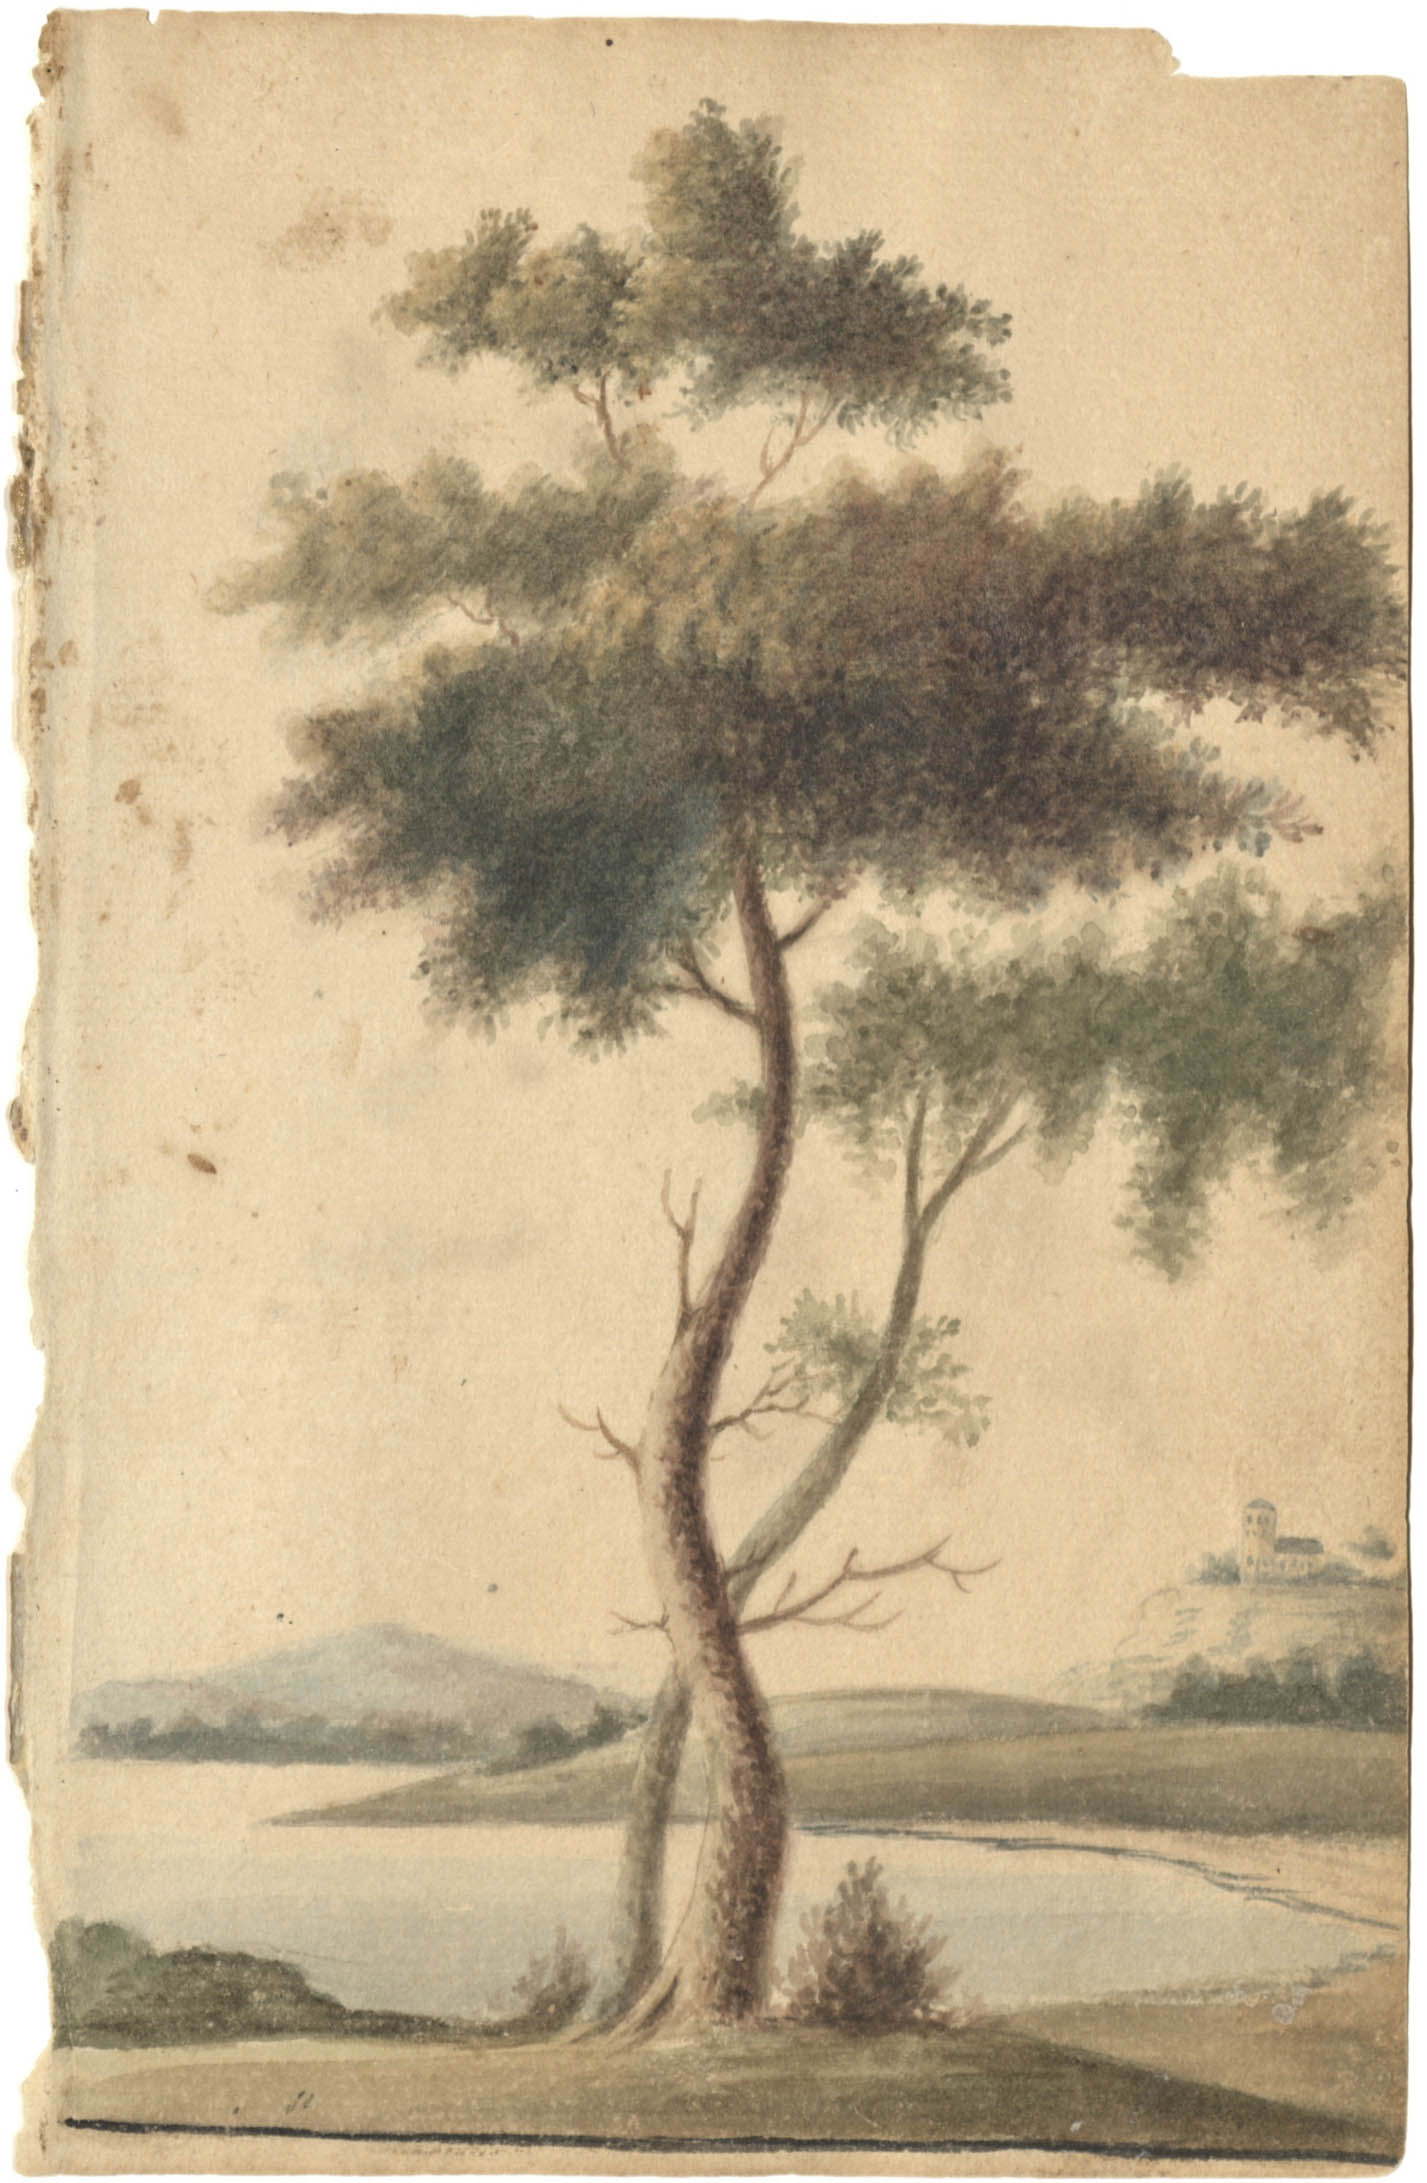 Landscape sketch of trees and castle